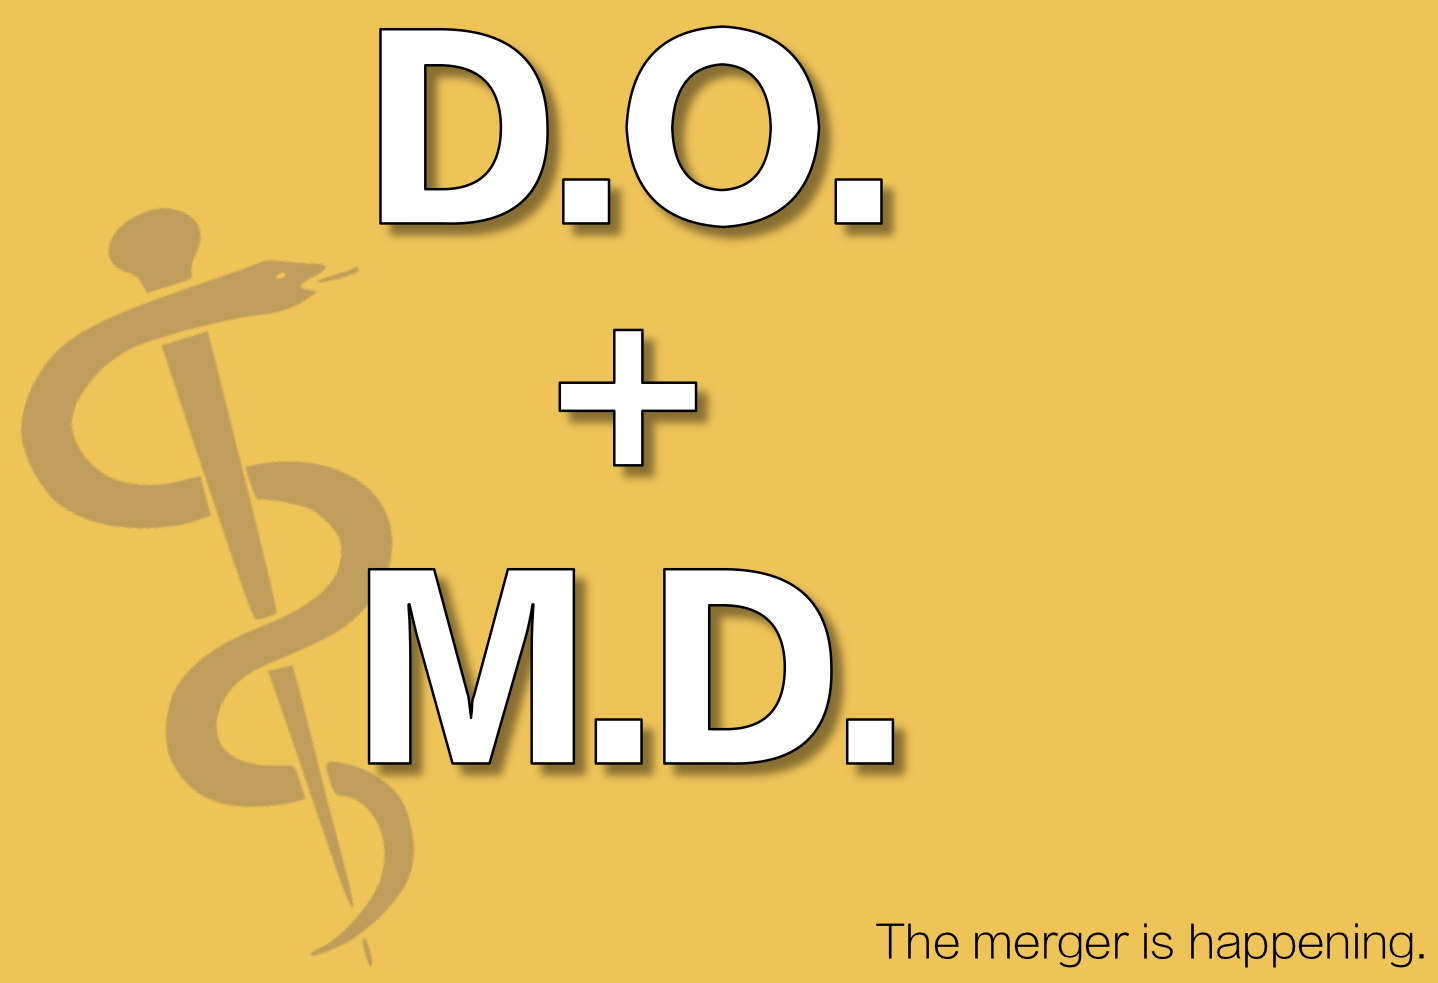 A Unified ACGME.